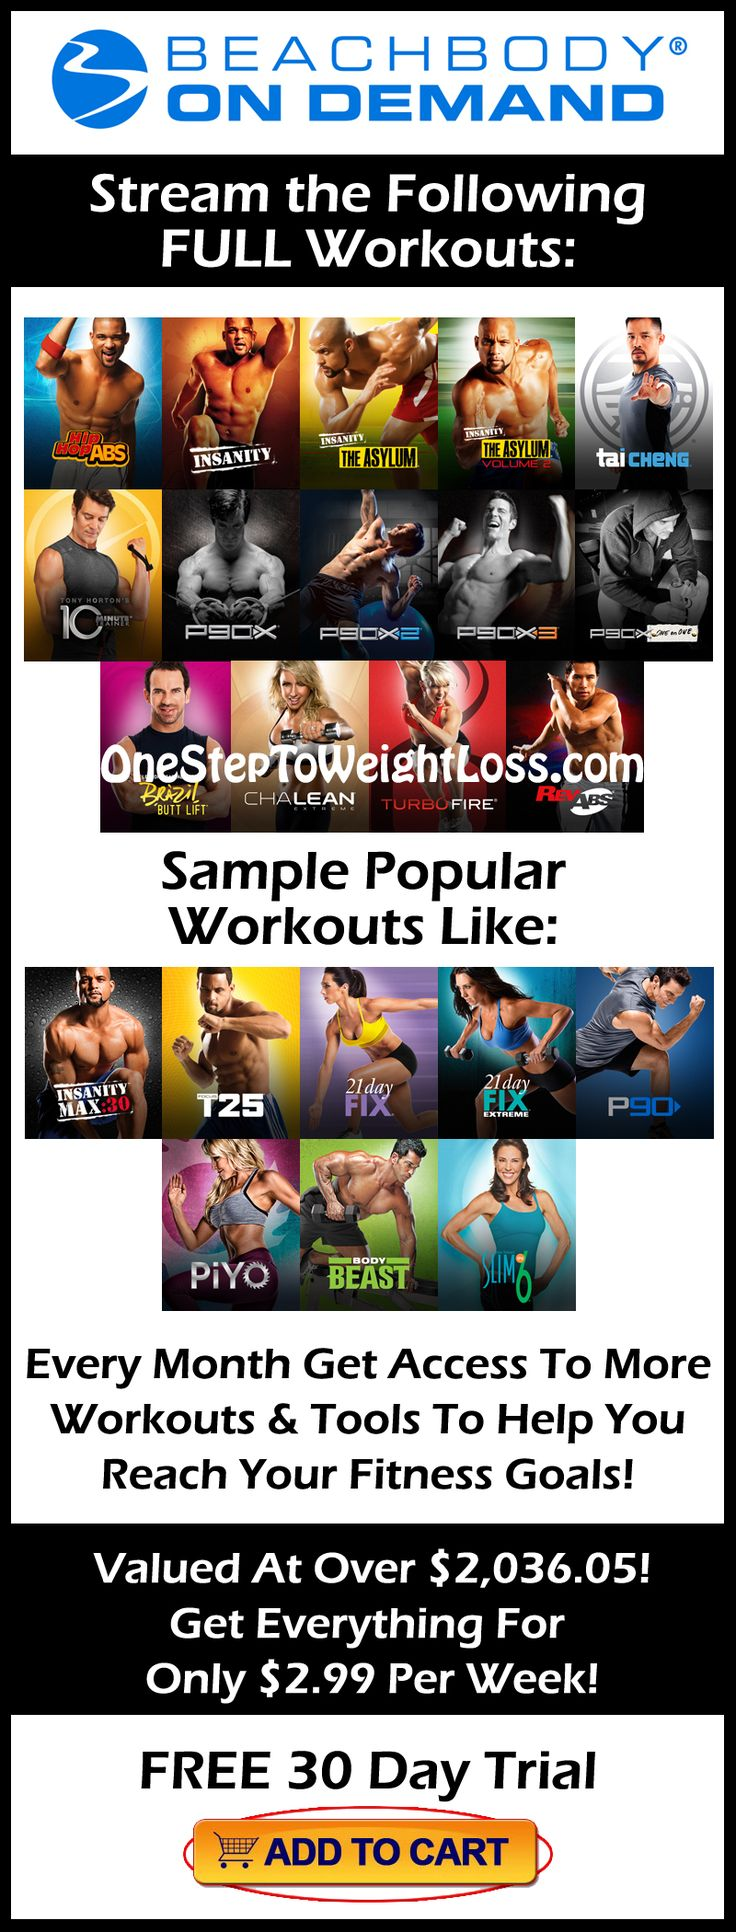 Beachbody on Demand offers full workout programs, sample workouts, nutrition guides, recipes, and much more to help you lose weight! Check it out here: http://www.tipstoloseweightblog.com/weight-loss/stream-full-workouts-online-beachbody-on-demand